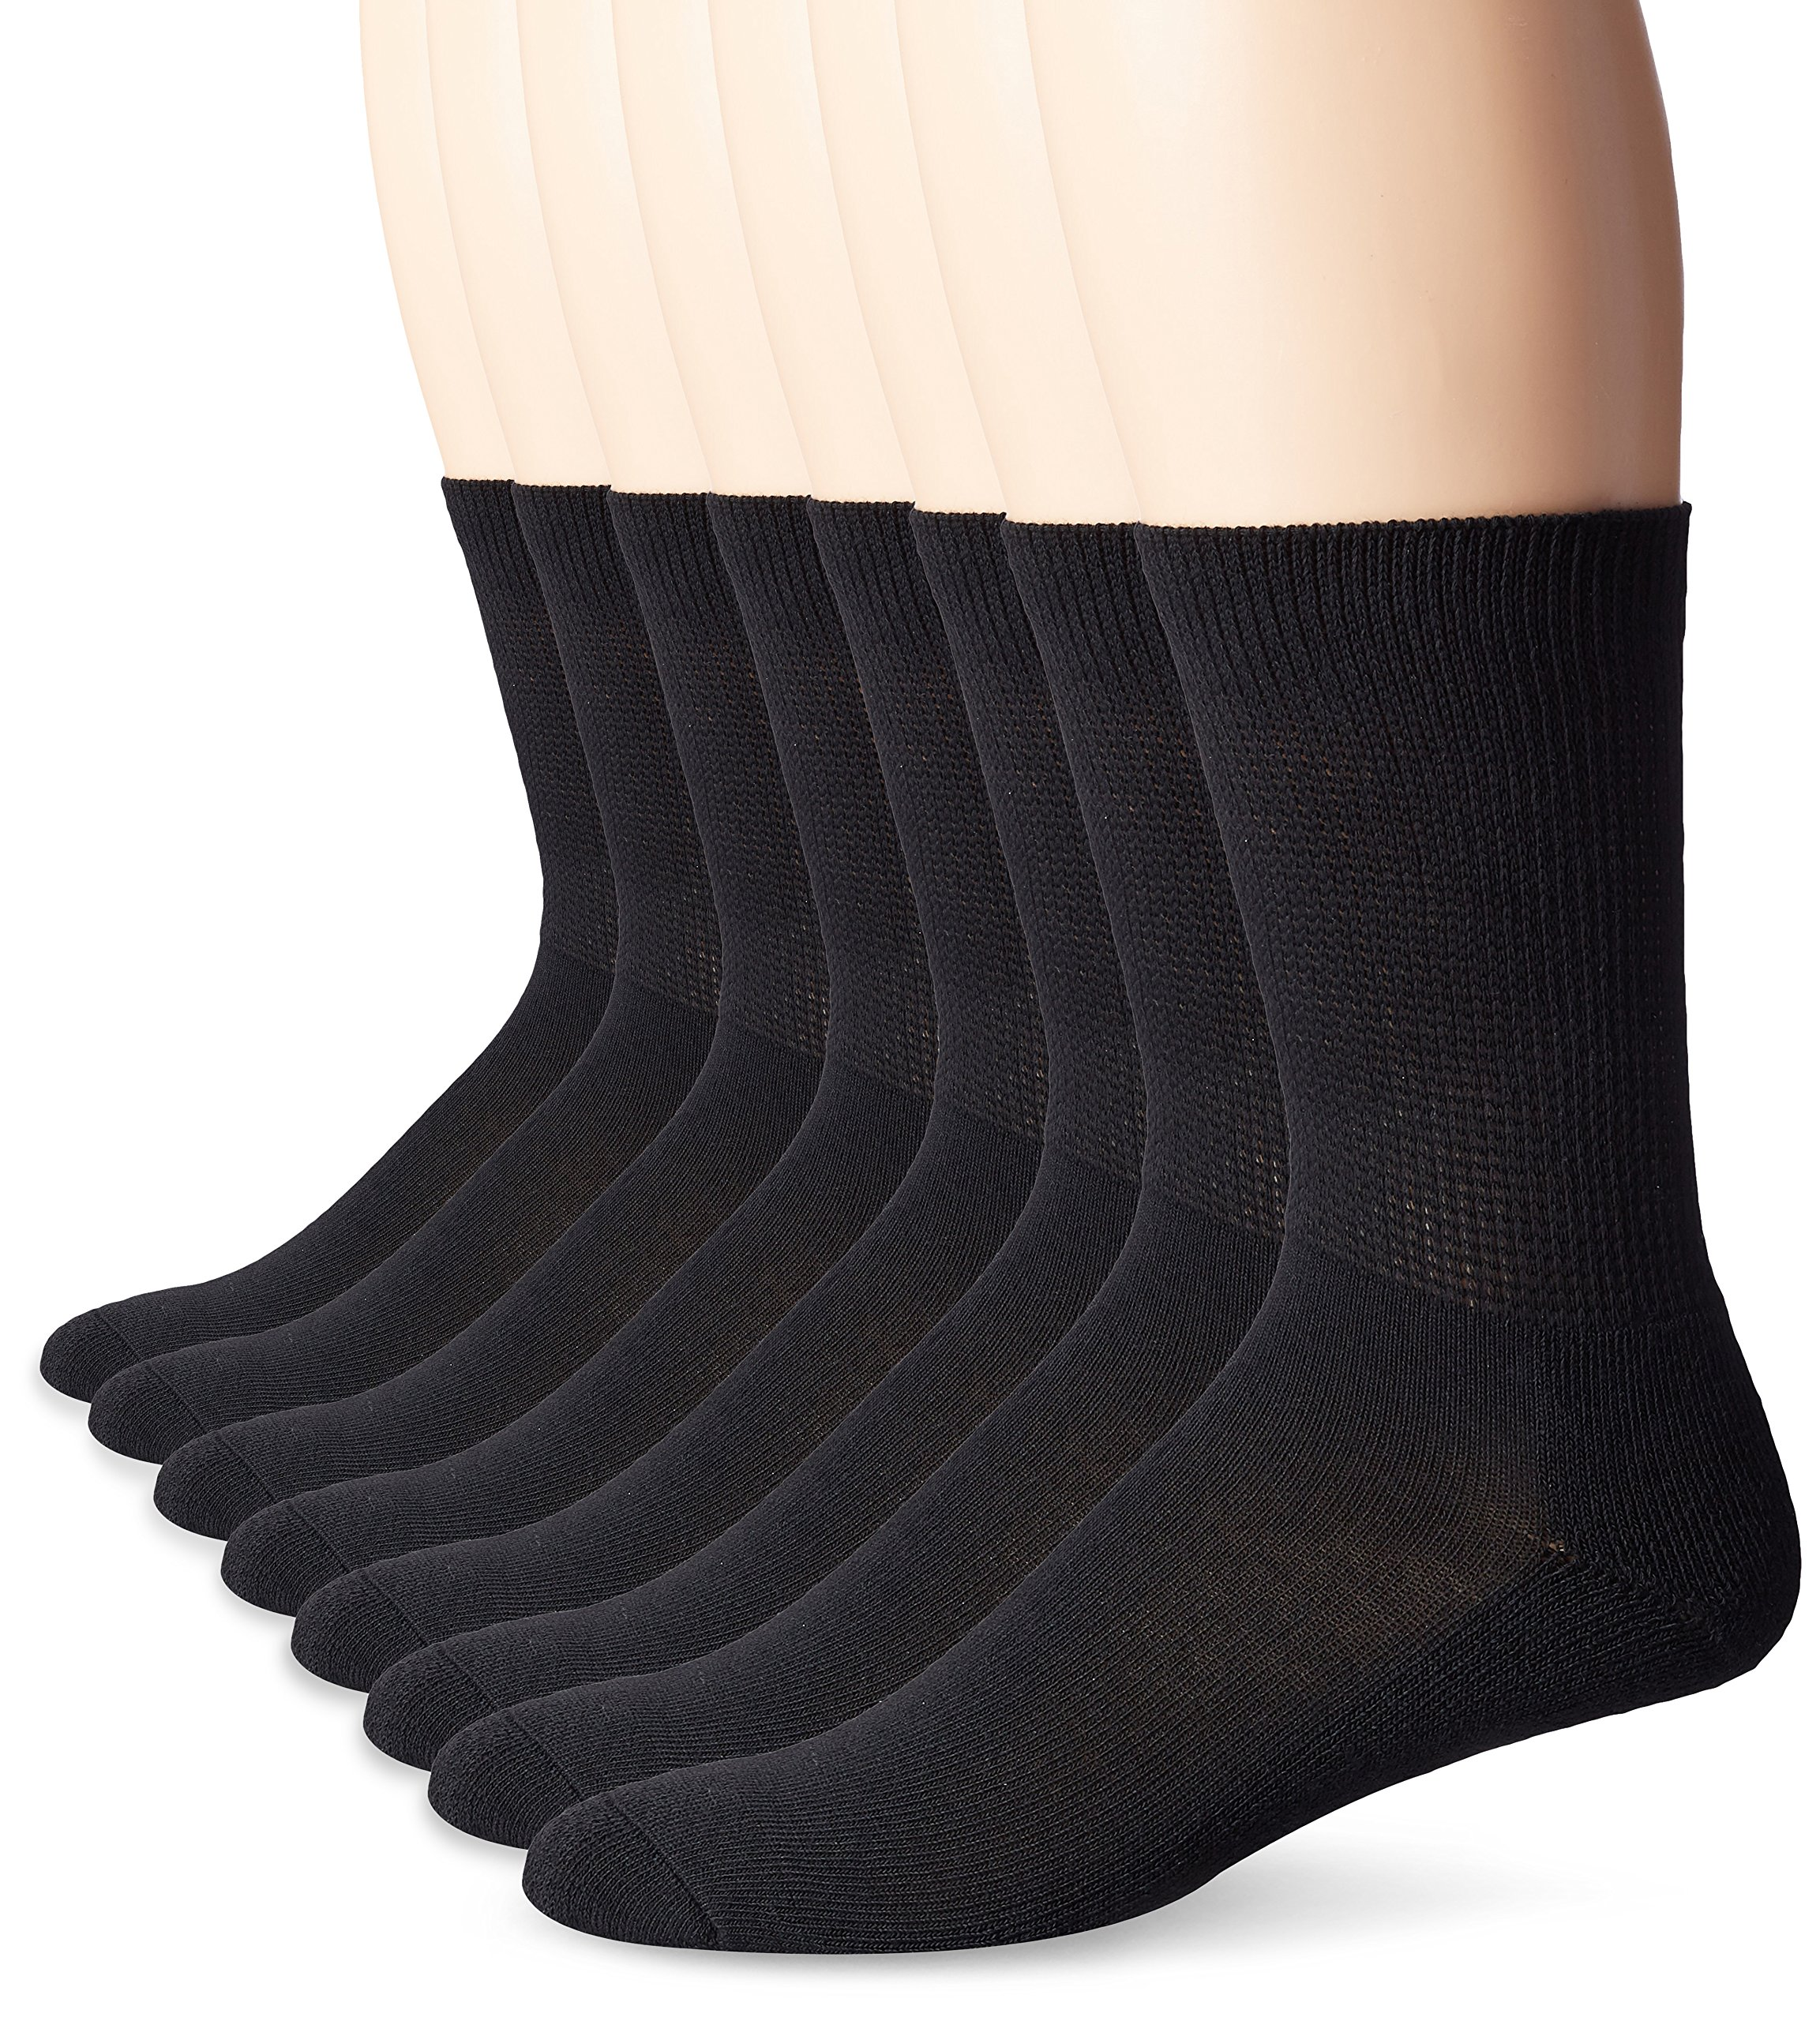 b507444ffa MediPEDS Men's Extra Wide Non-Binding Top Crew Socks with Coolmax Fiber 8  Pairs,